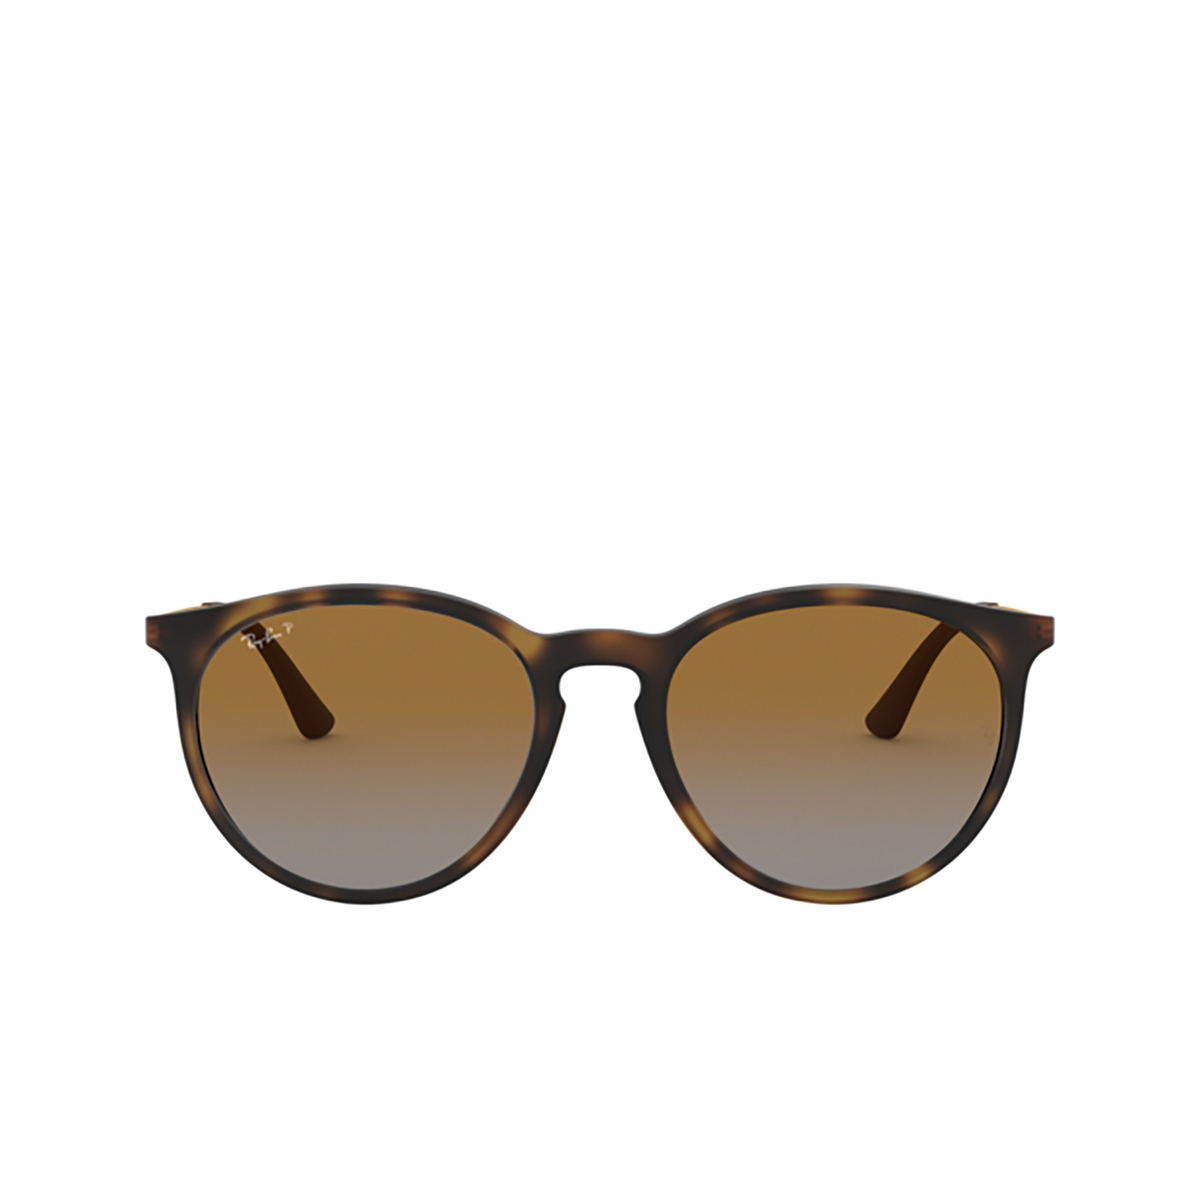 Ray-Ban® Round Sunglasses: RB4274 color Rubber Havana 856/T5 - 1/3.